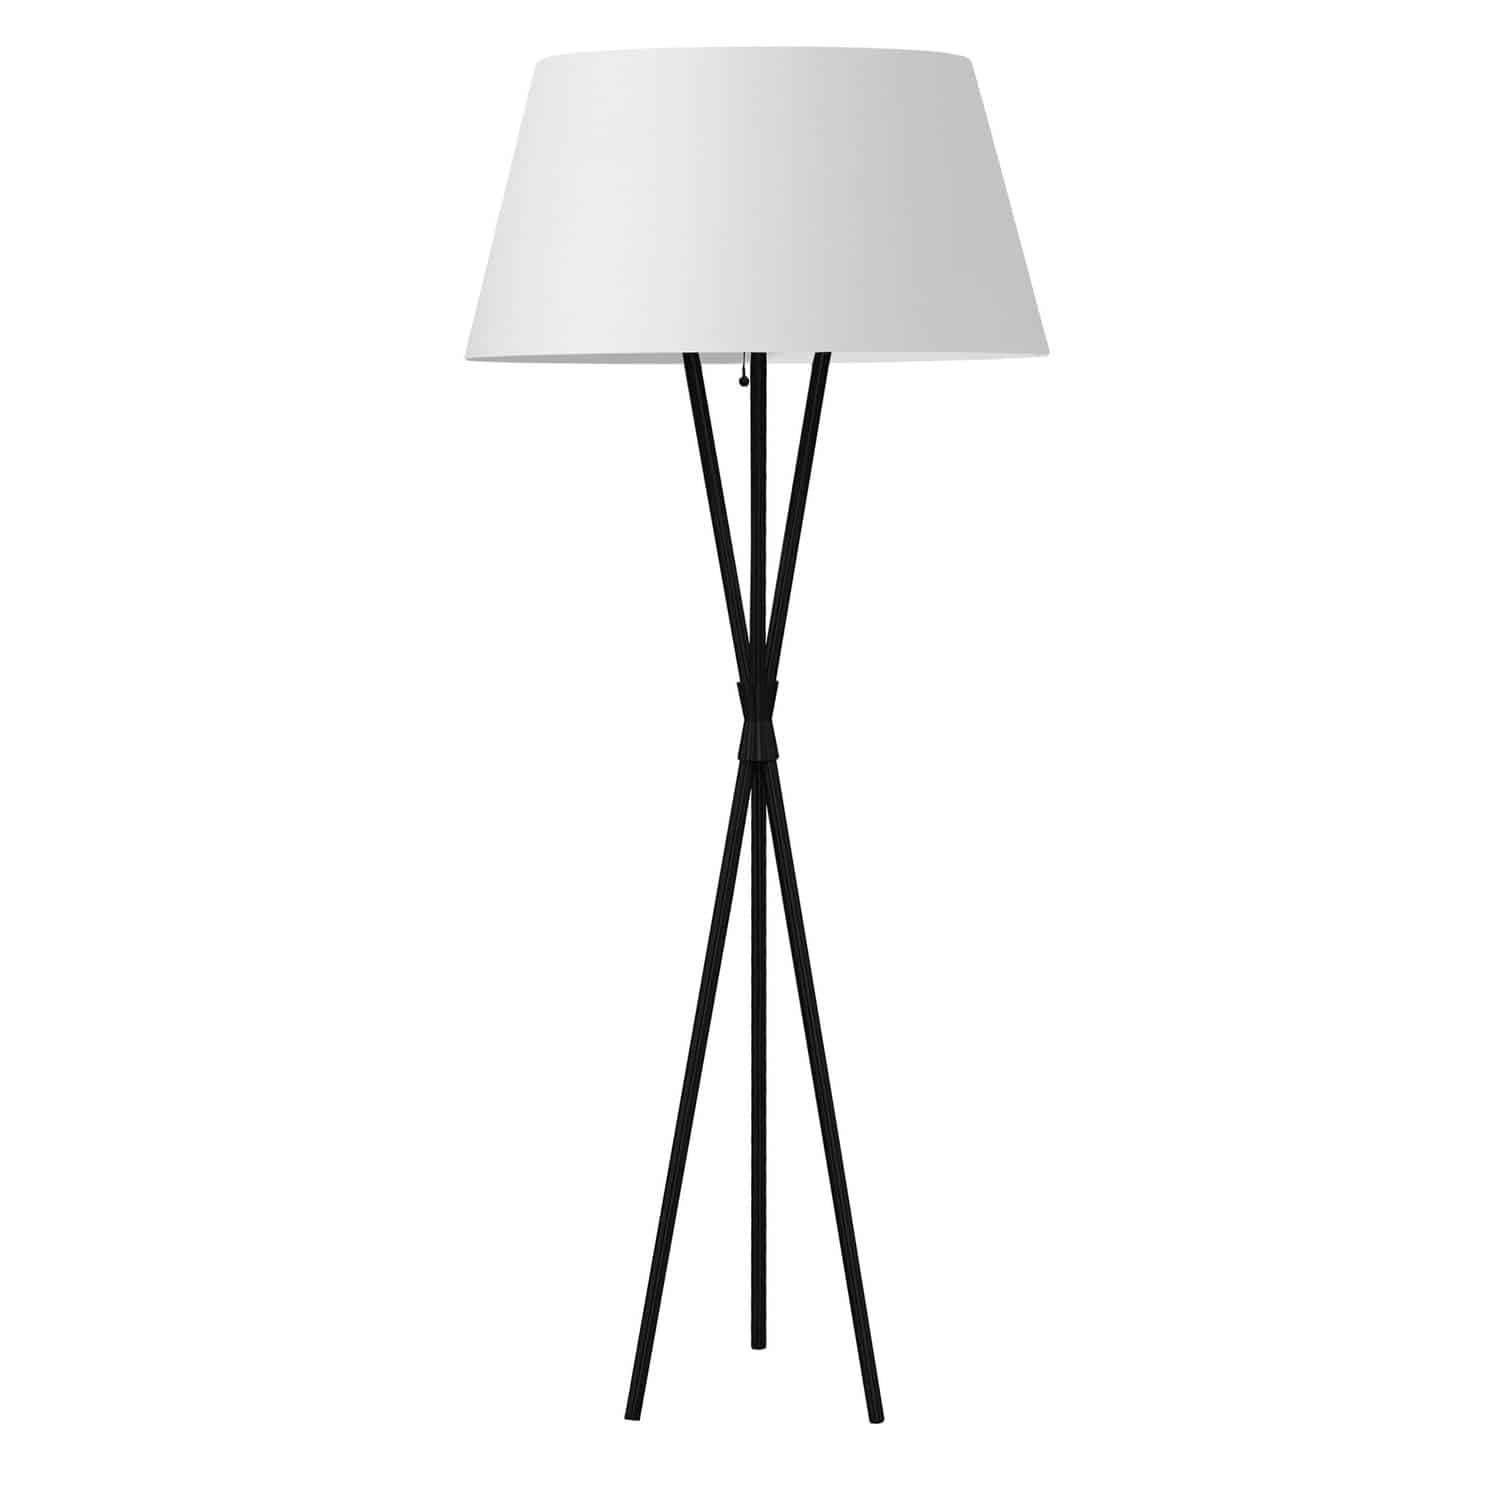 1LT Incandescent Floor lamp, MB w/ WH Shade